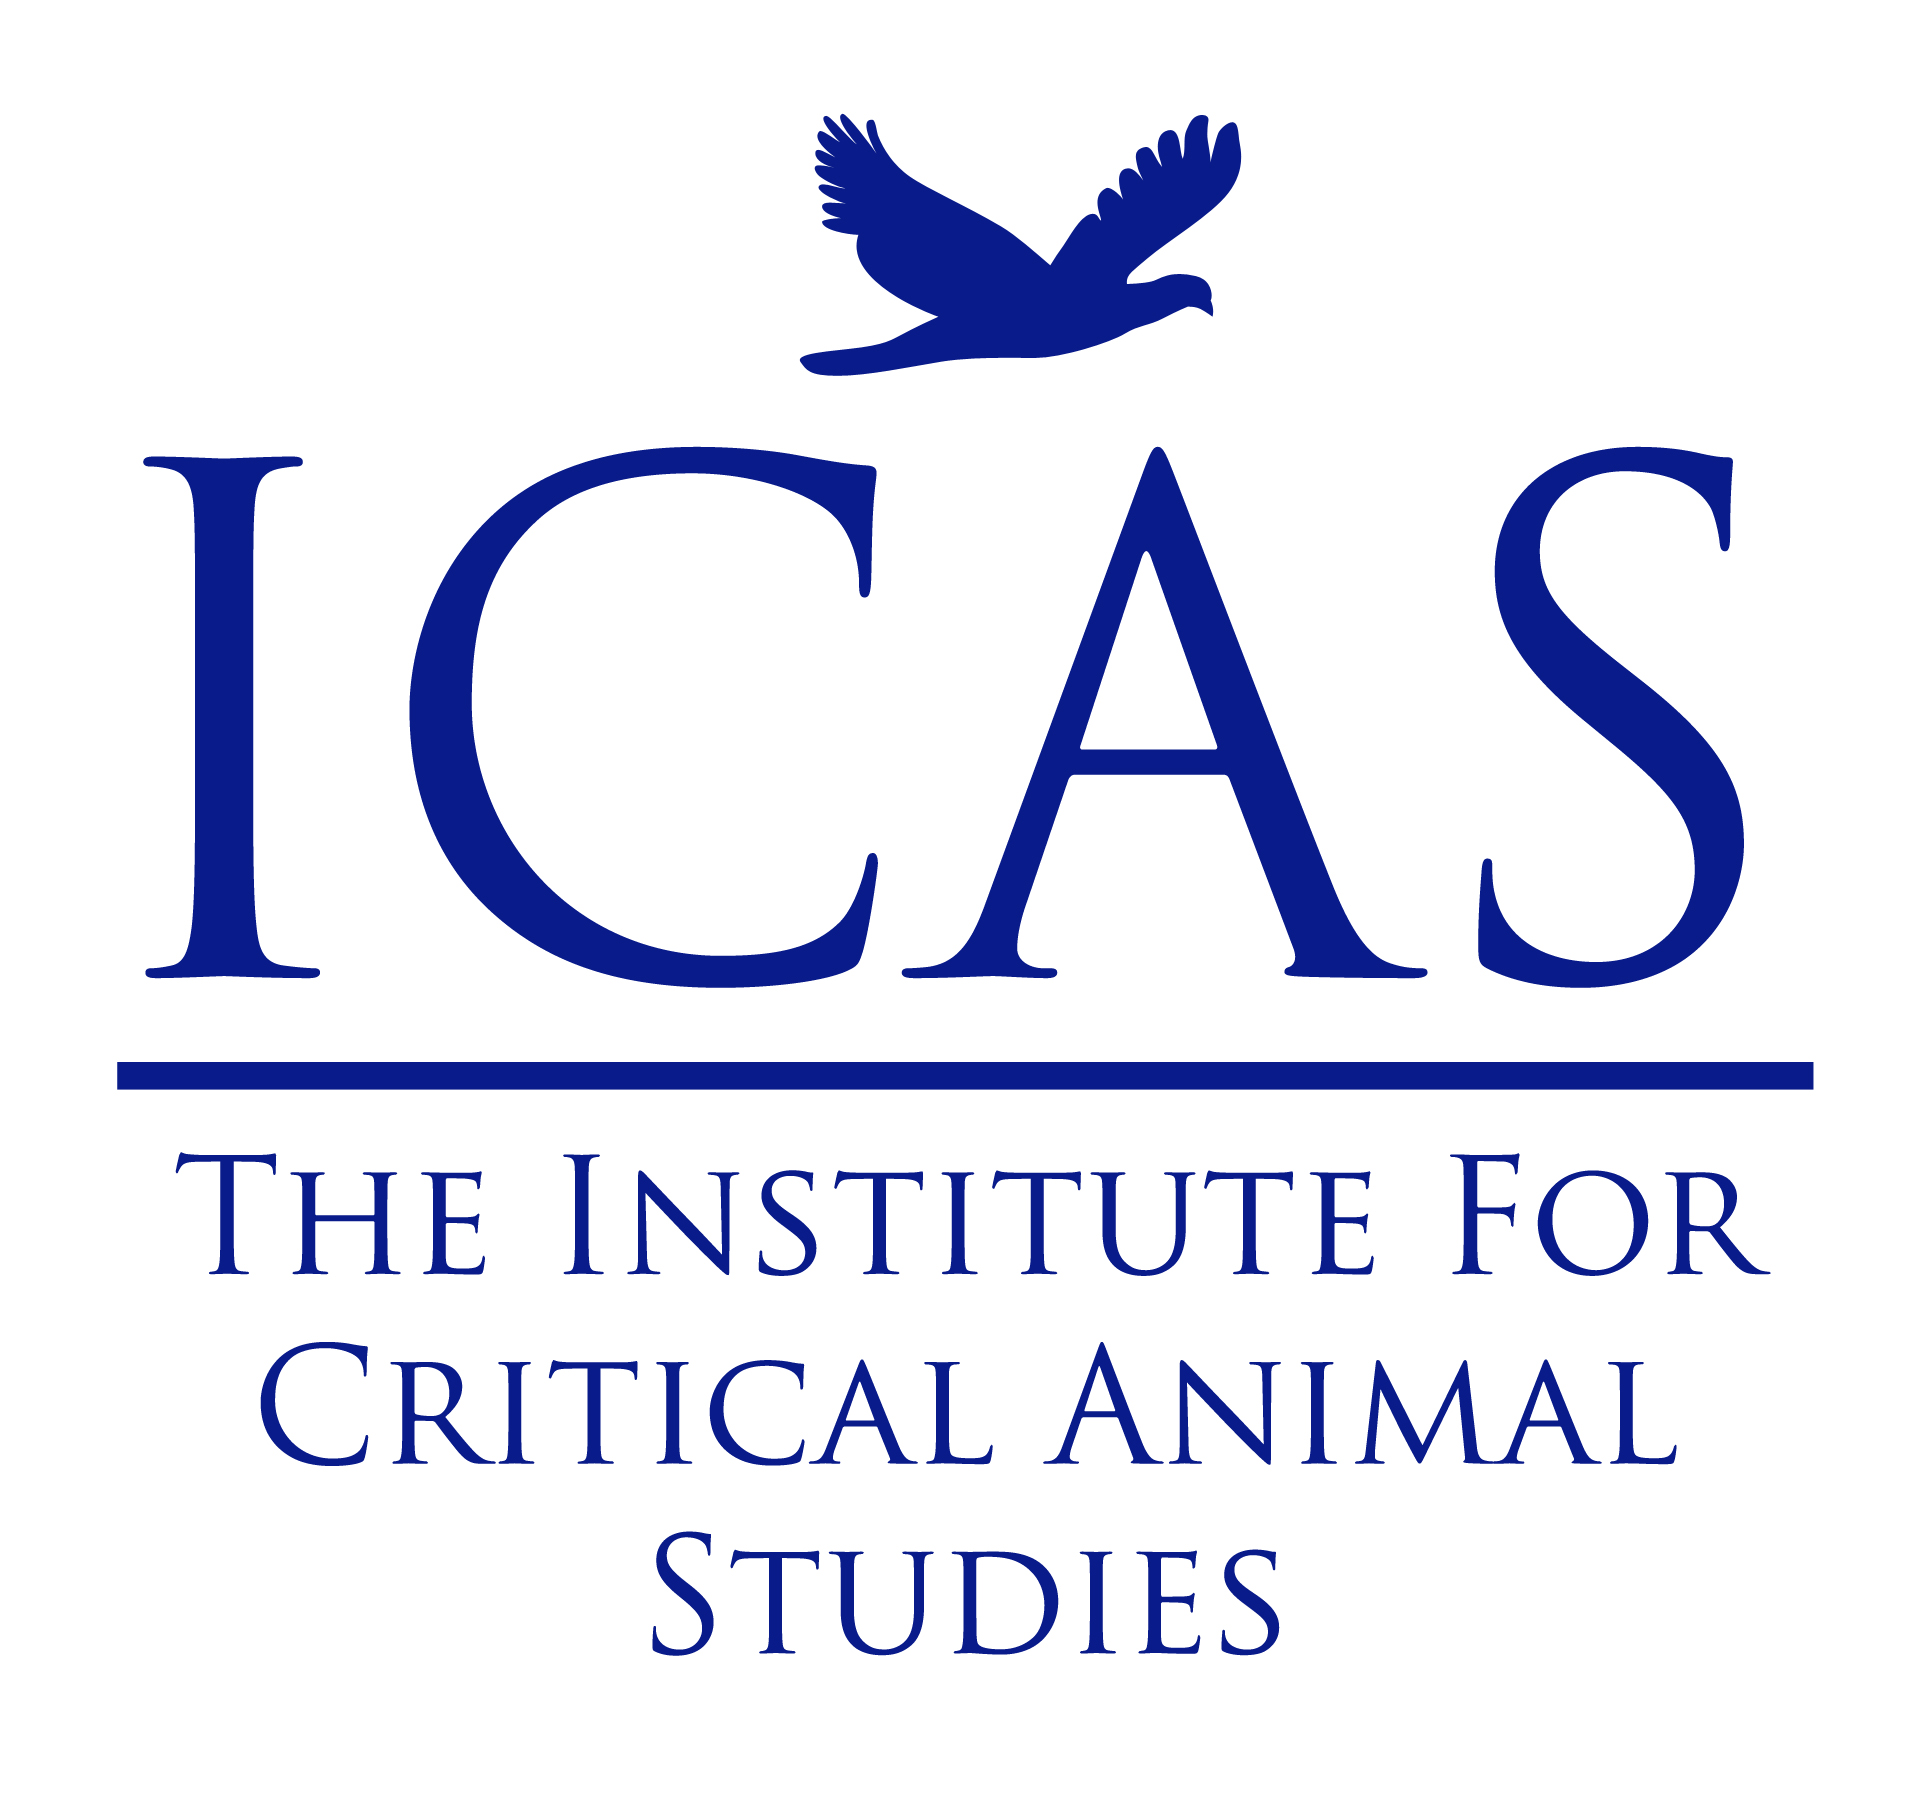 Institute for Critical Animal Studies Website Design History